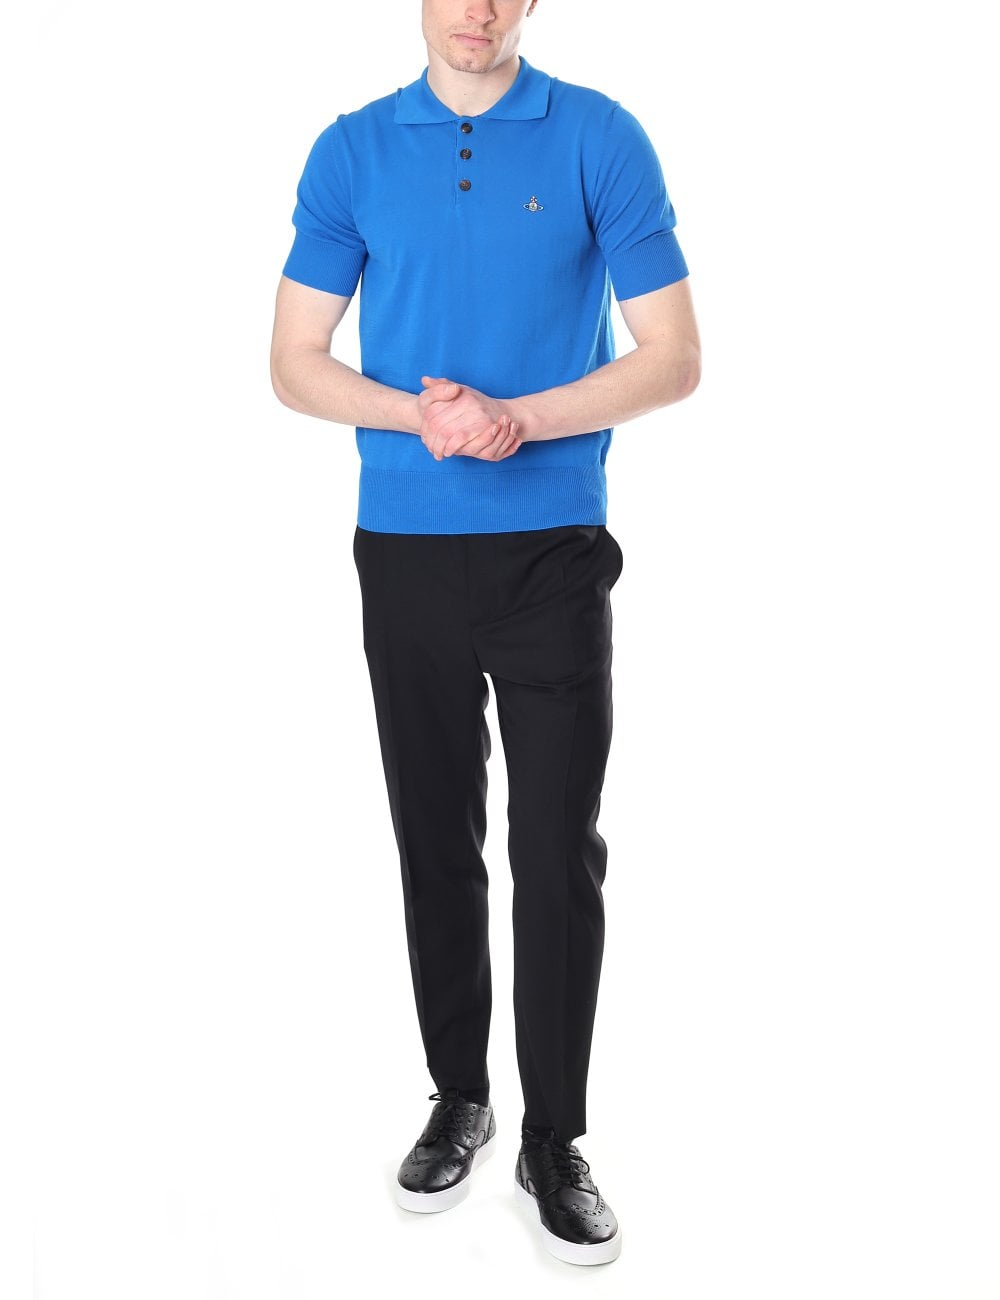 uk cheap sale top quality stable quality Vivienne Westwood Men's Short Sleeve Knitted Polo